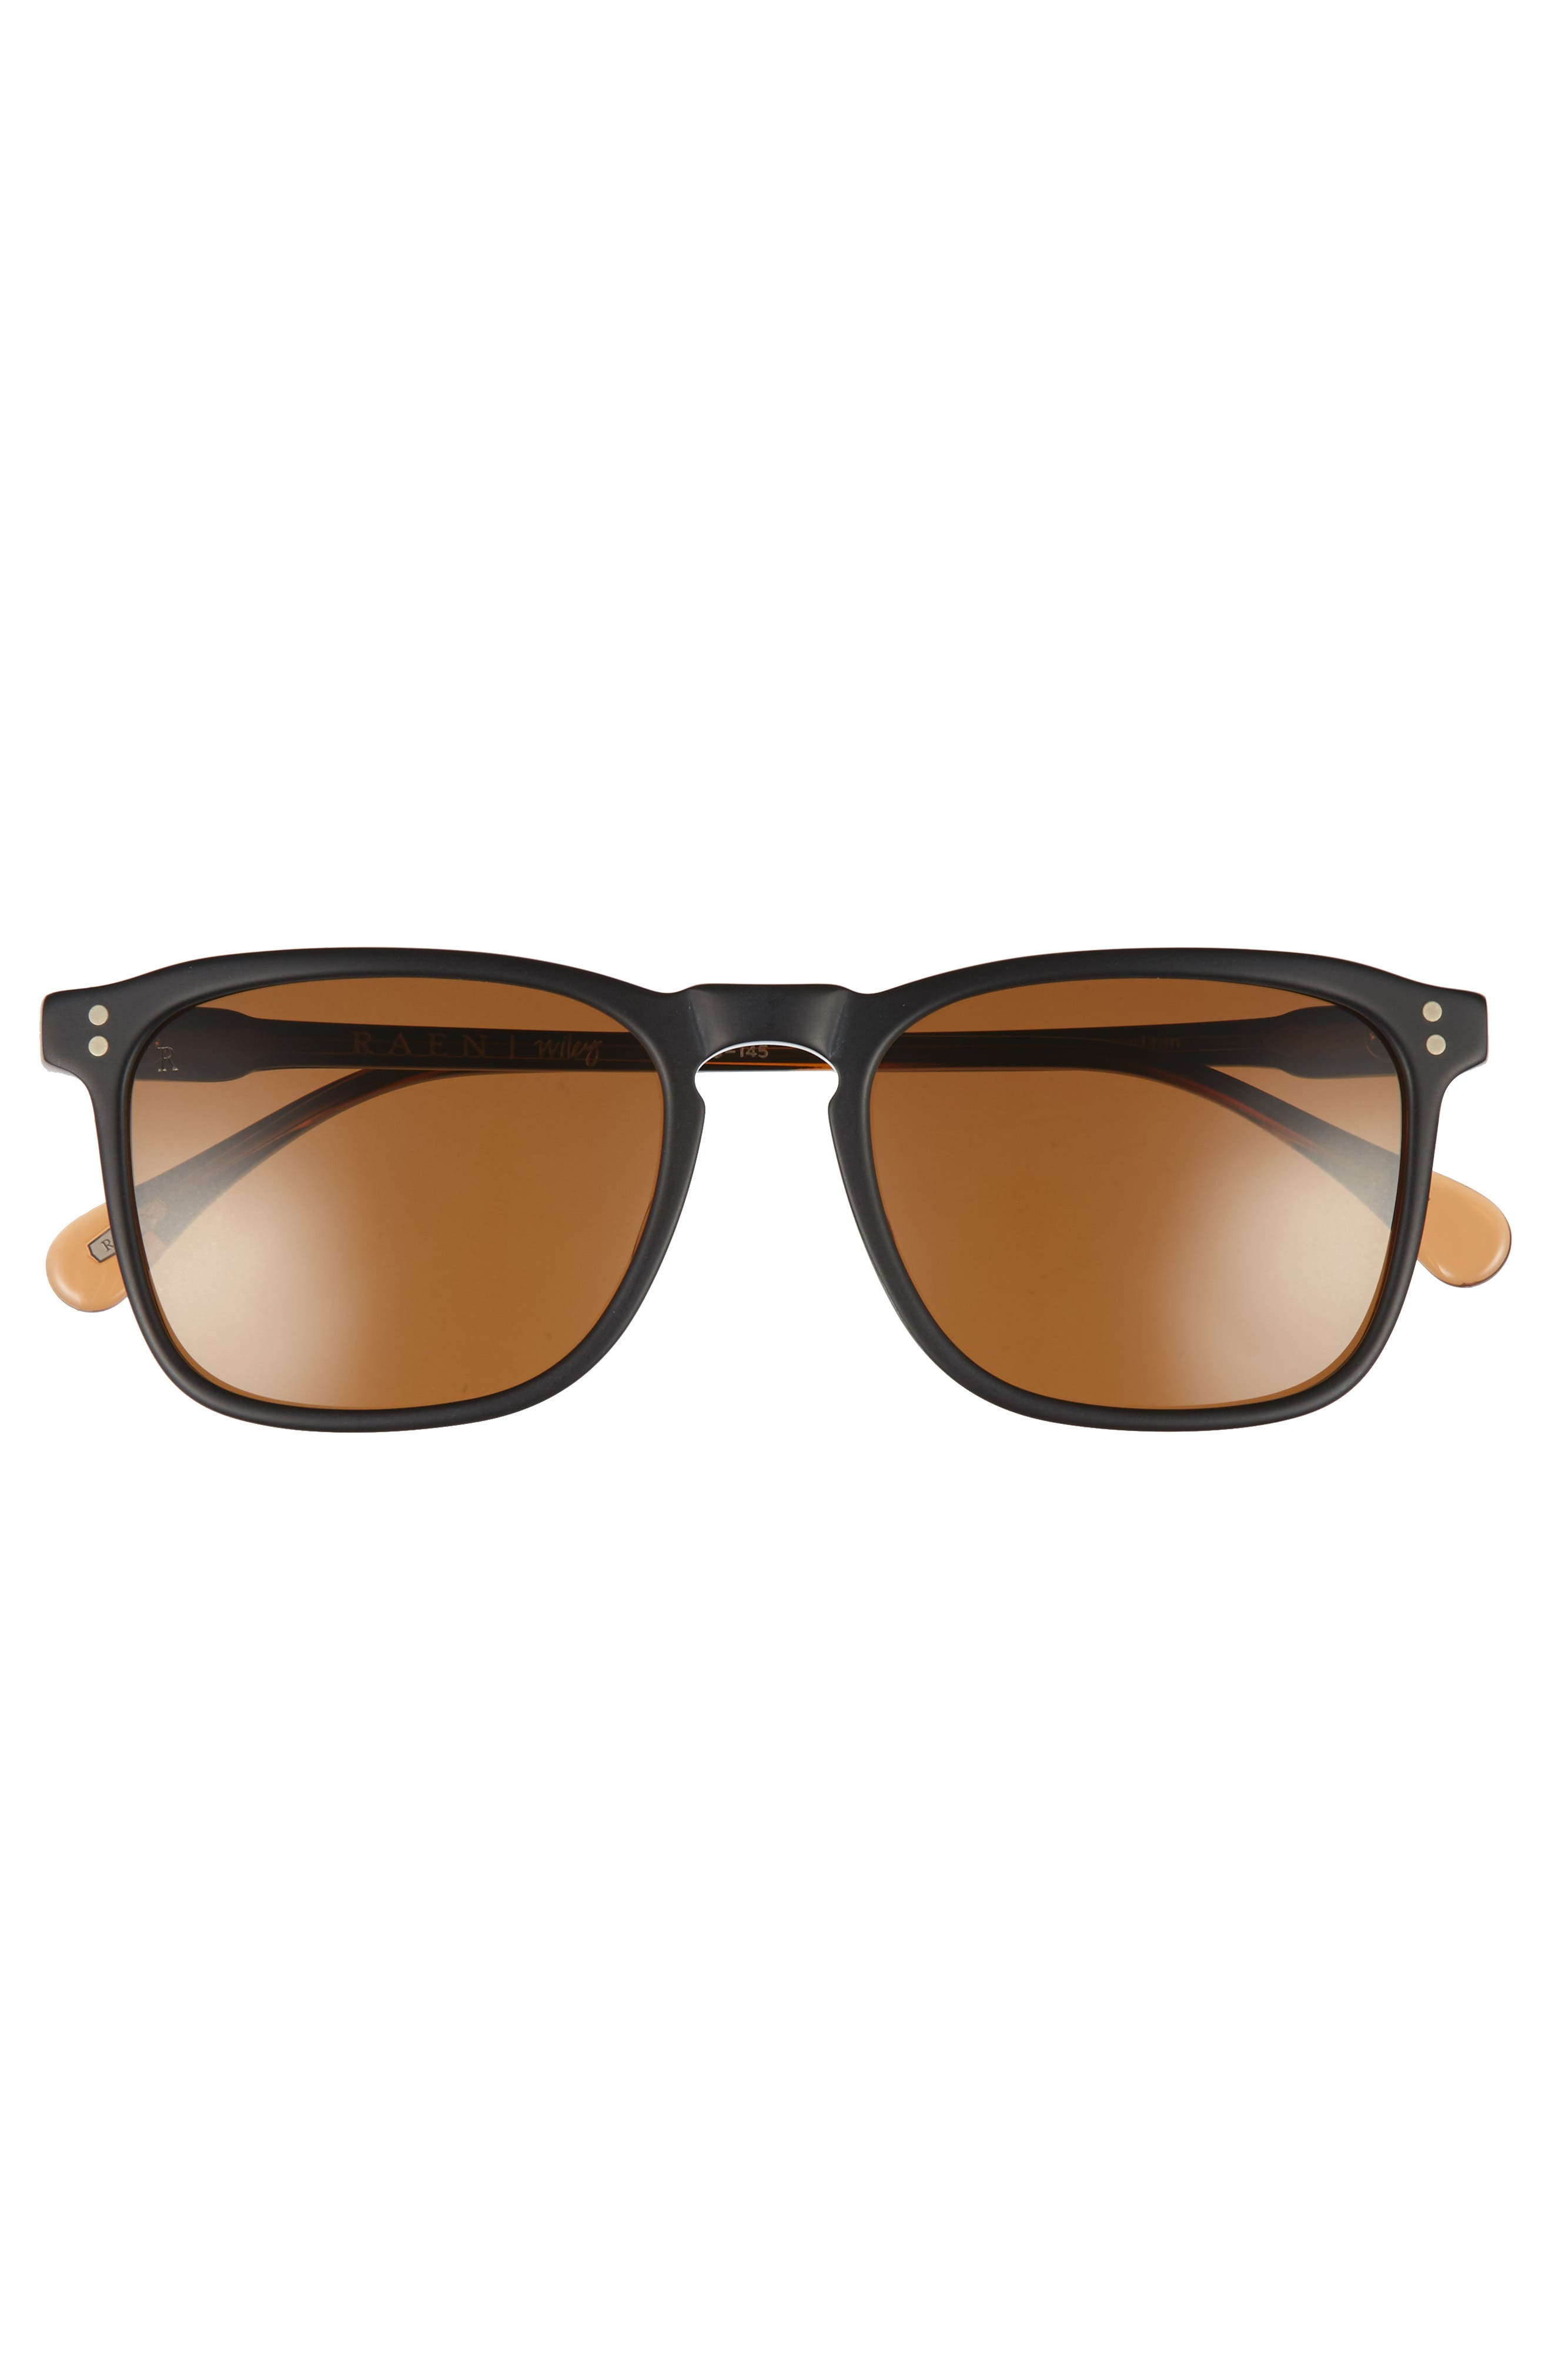 Wiley 54mm Polarized Sunglasses,                             Alternate thumbnail 2, color,                             004